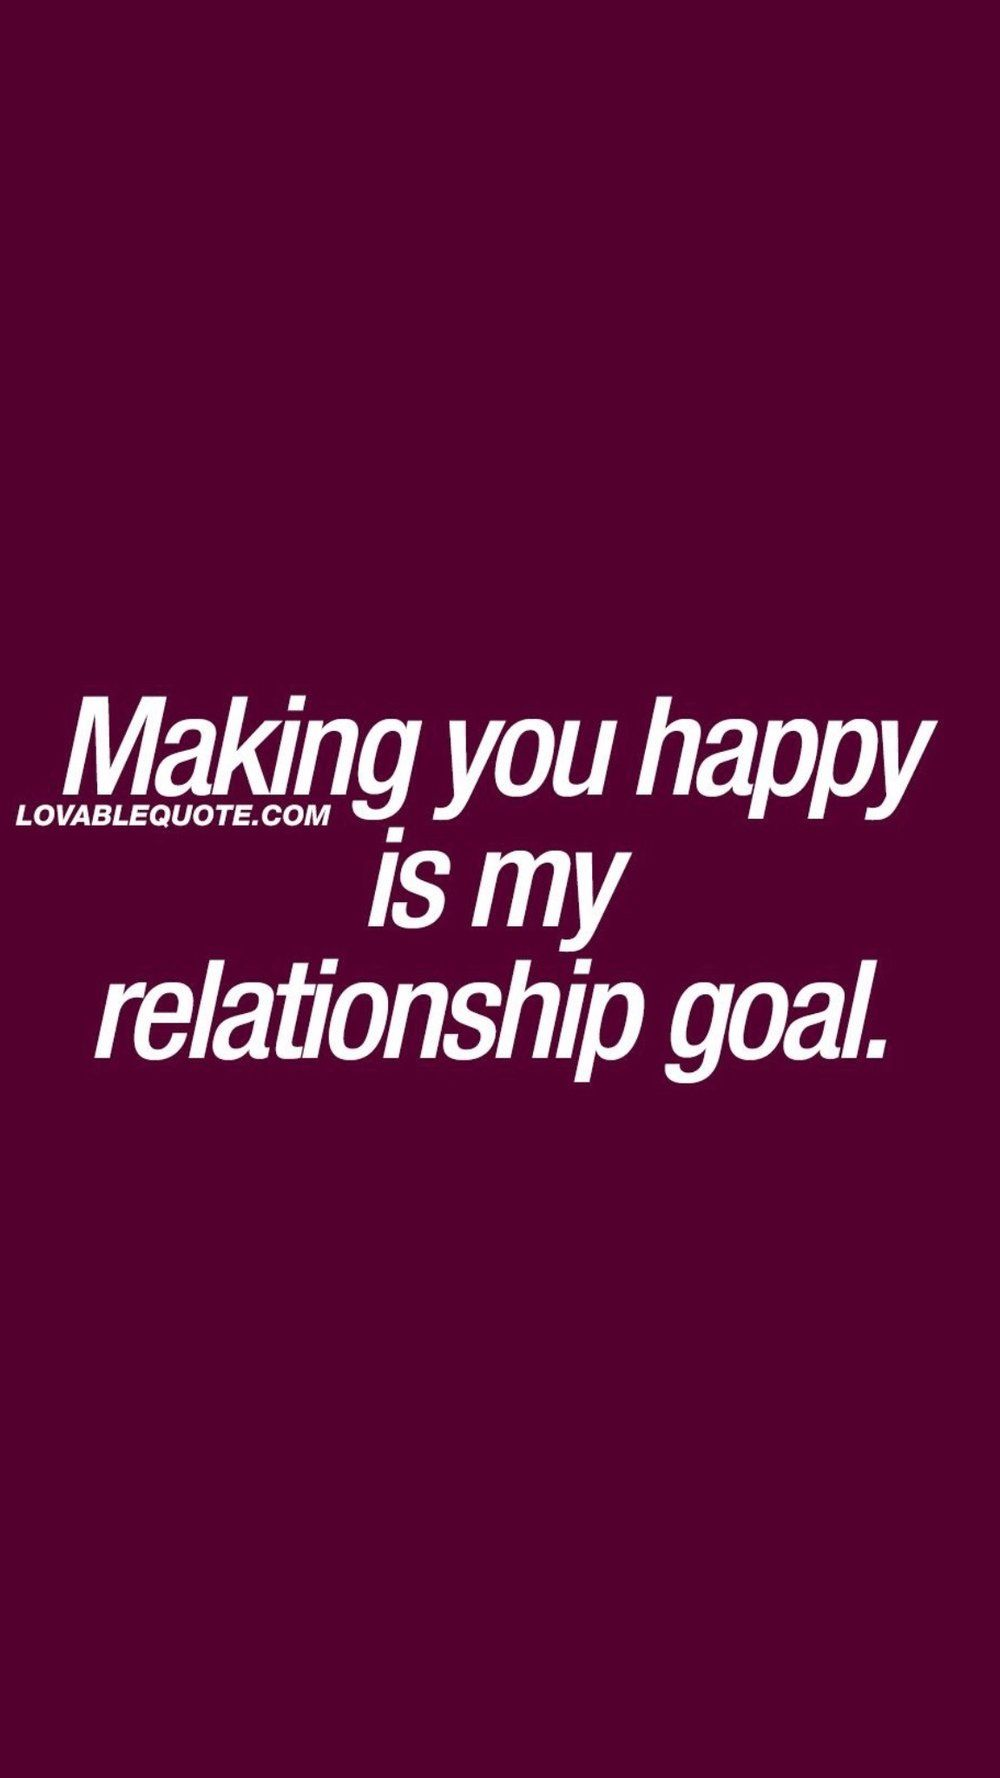 Flirty Relationship Quotes Relationshipgoals Love And Romance Quotes Flirty Quotes Quotes